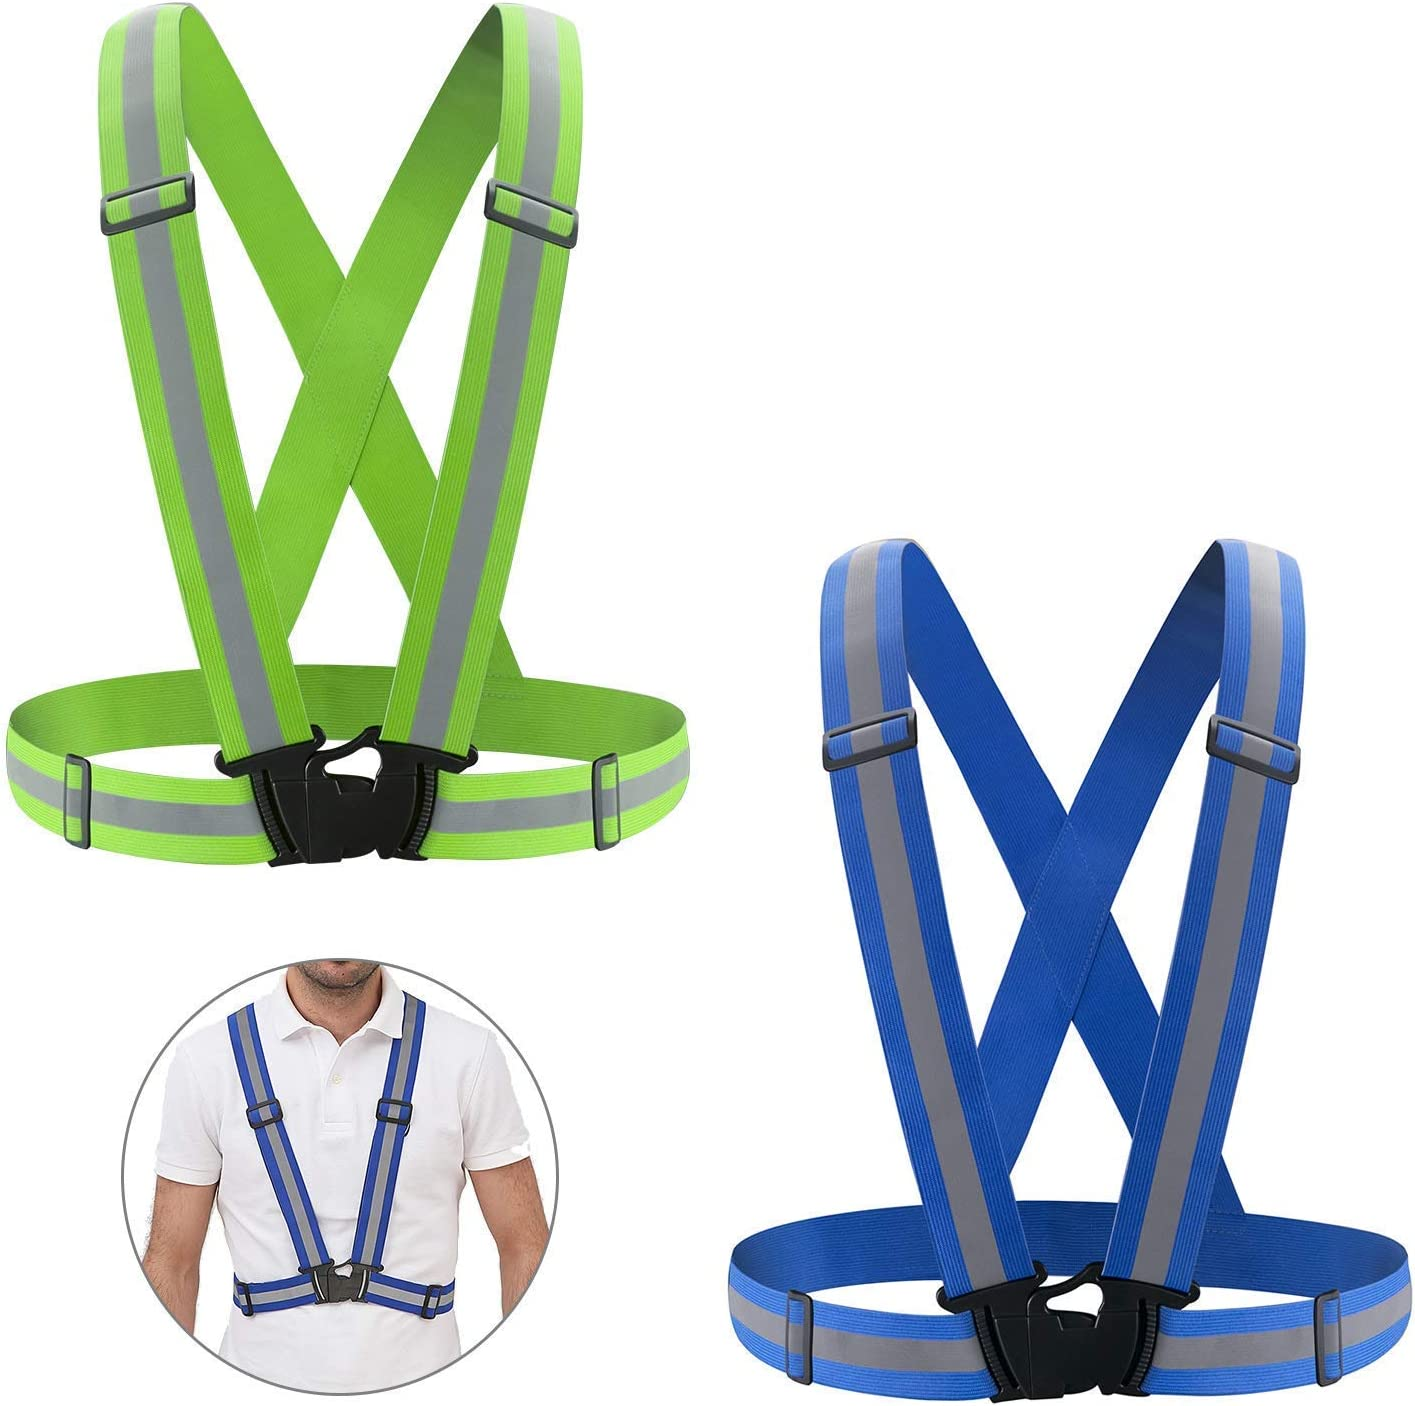 MiaoMa Reflective Vest with Adjustable Strap & Breathable Holes, Safety Vest Waist Belt with 360° High Visibility for Night Running, Jogging, Cycling, Walking (2 Pack)